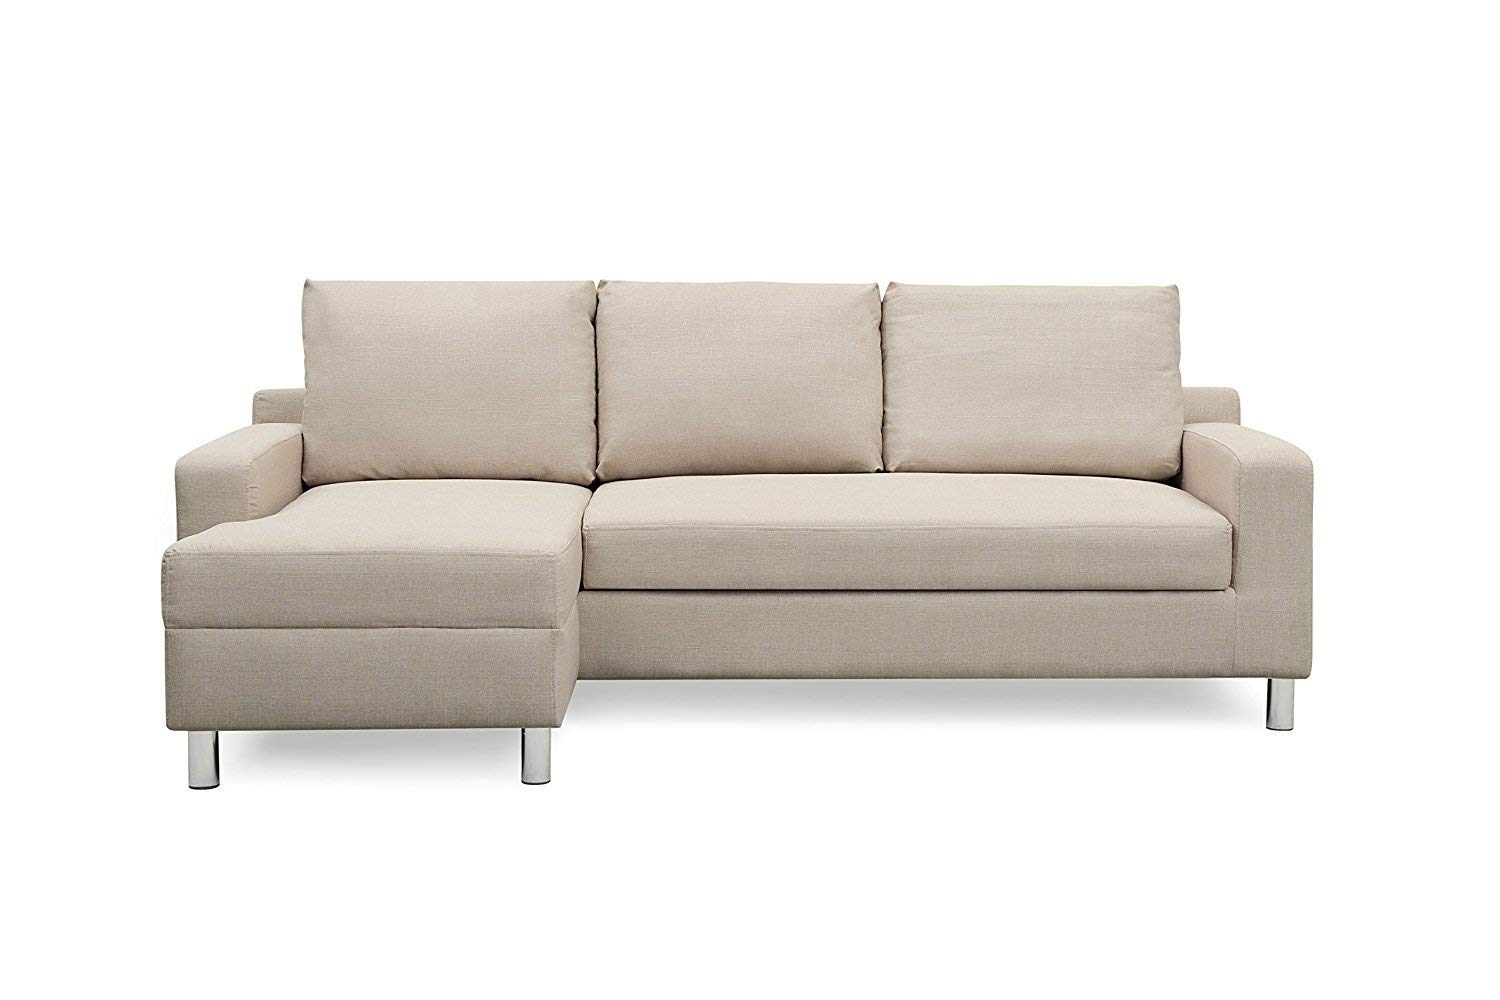 """Container Furniture Direct S0114-L Amelie Linen Upholstered Contemporary Modern Left-Sided Sectional Sofa with Bed, 83.9"""", Beige"""